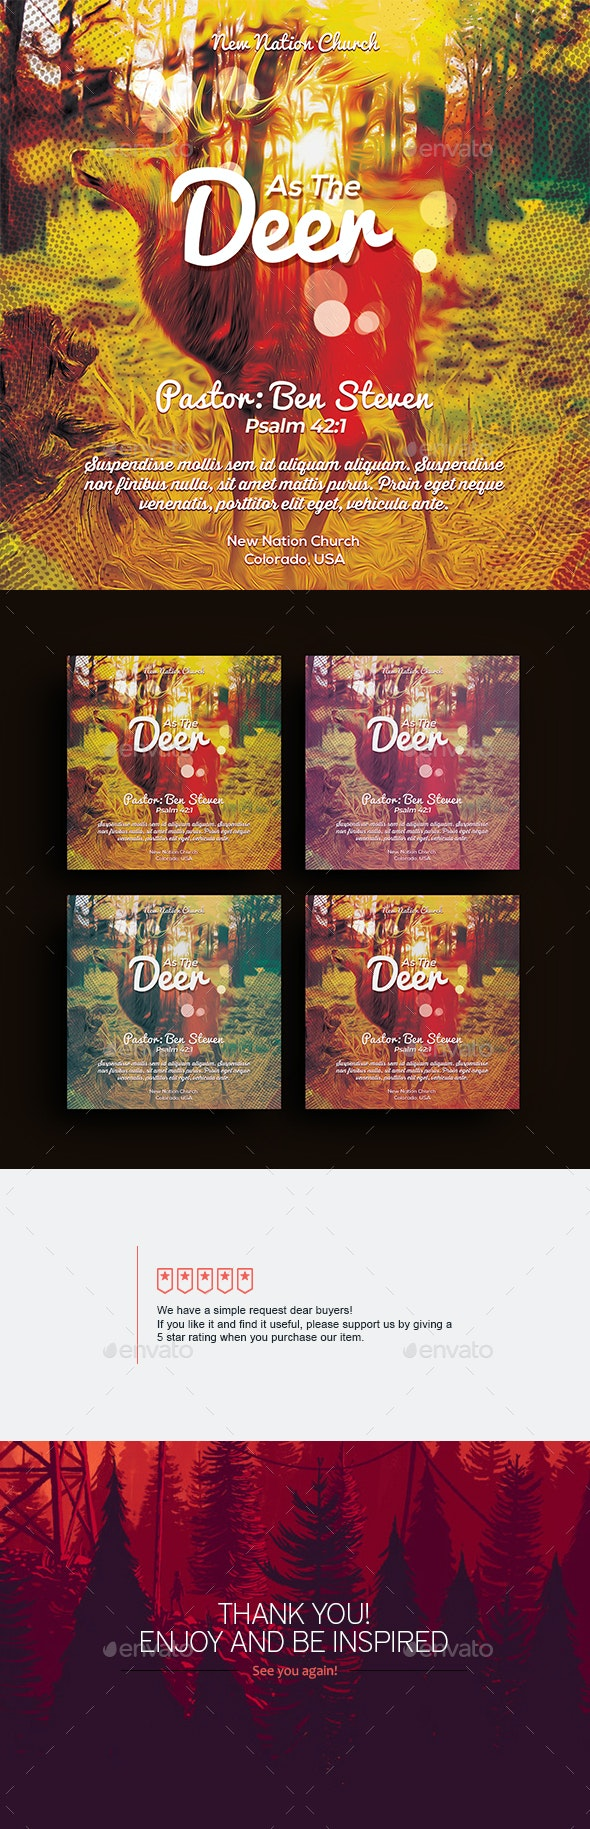 As The Deer - Square Flyer - Church Flyers